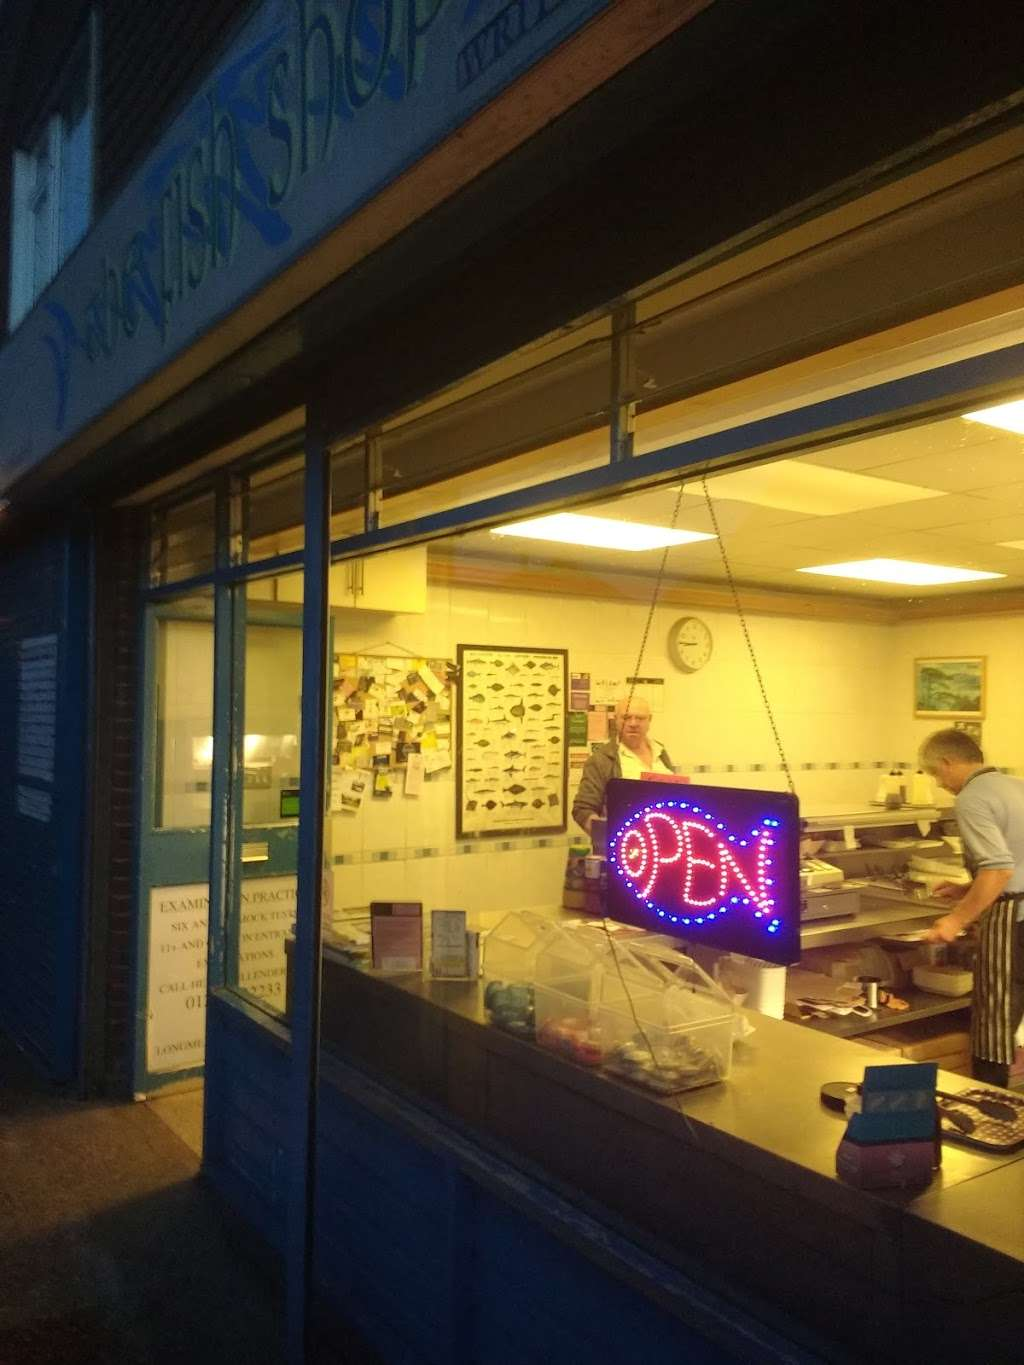 The Fish Shop - meal takeaway  | Photo 1 of 7 | Address: 7B Bridge St, Writtle, Chelmsford CM1 3EY, UK | Phone: 01245 420890